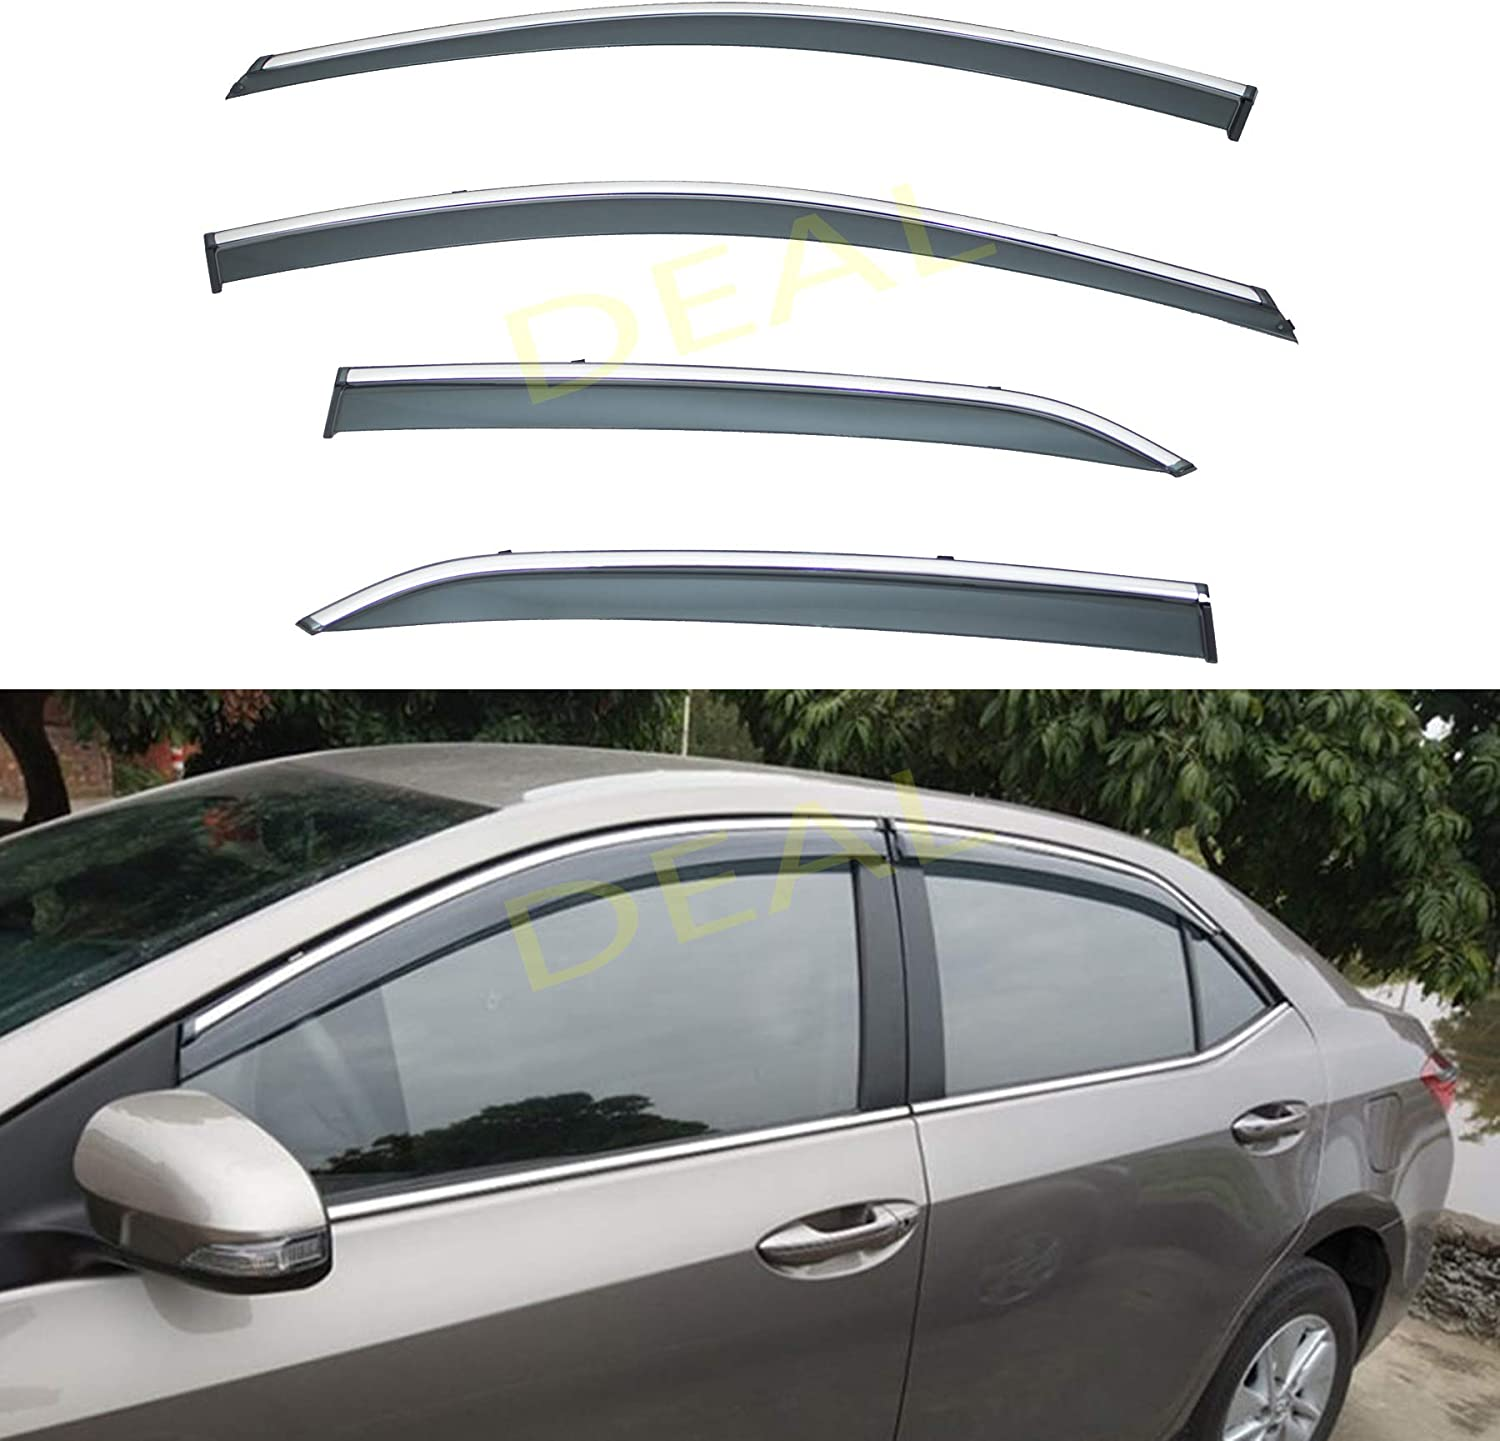 DEAL 4-Piece Set Outside Mount Tape On//Clip On Type Smoke Tinted Sun//Rain Guard Vent Window Visors With Chrome Trim For 2014-2018 Toyota Corolla All Models